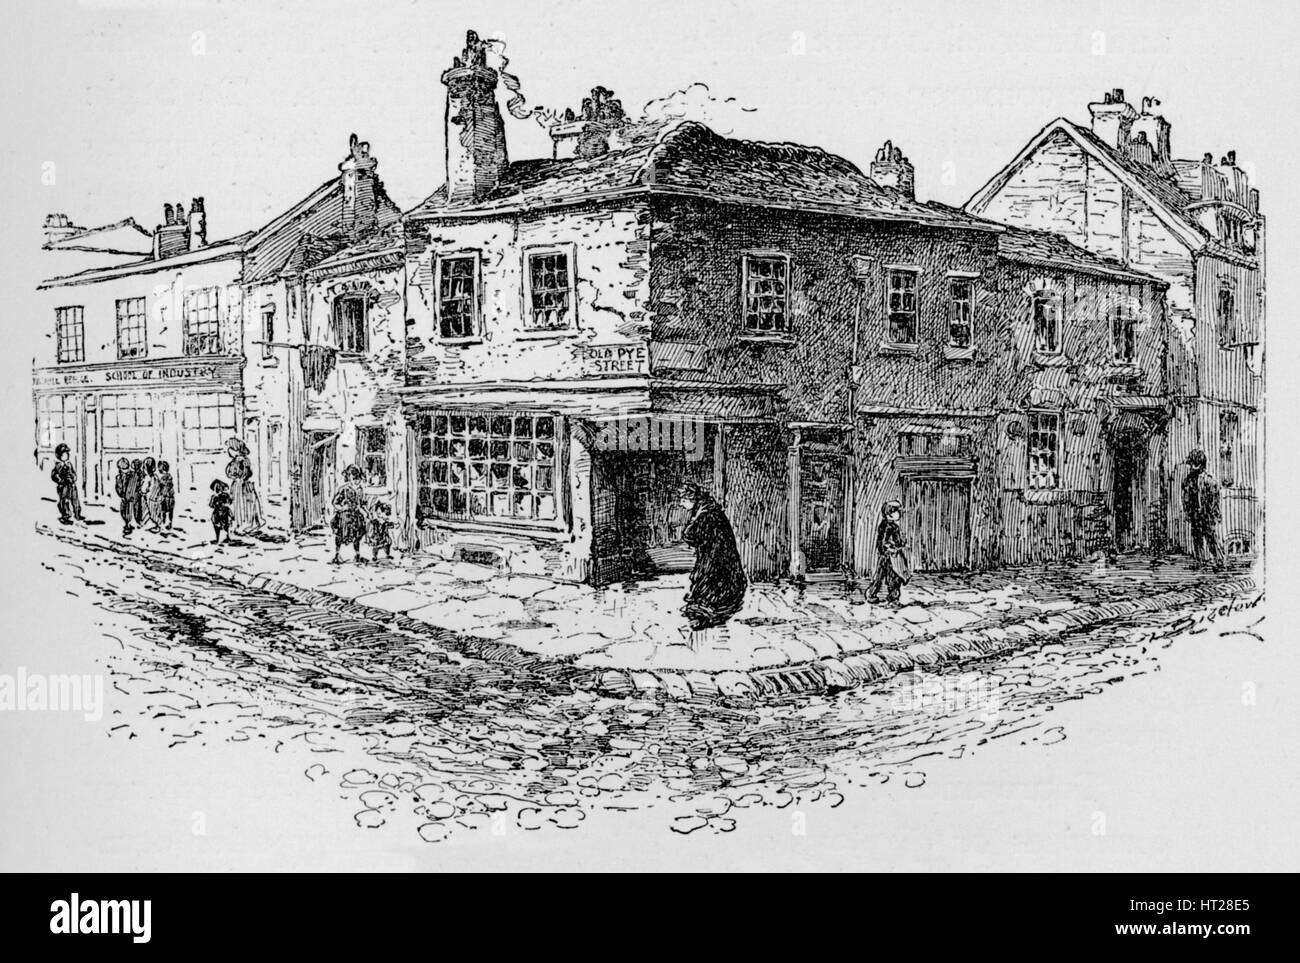 'Old Pye Street and the Ragged School', c1897. Artist: William Patten. - Stock Image